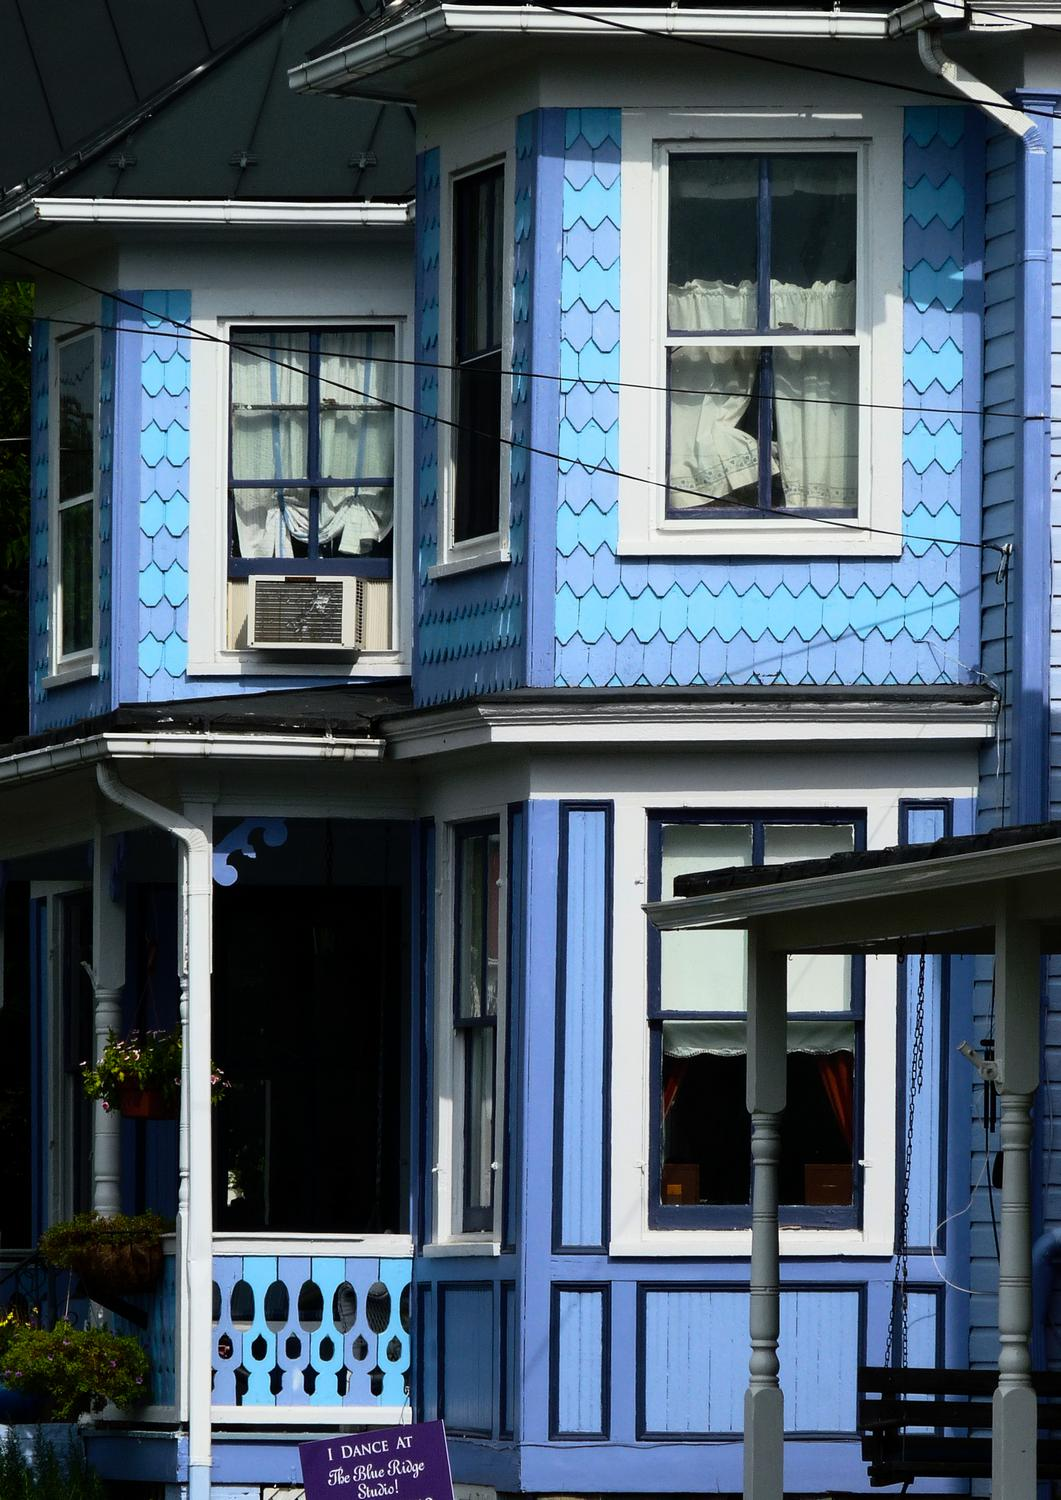 blue house - A lovely old Berryville house - Berryville Virginia - Panasonic DMC-FZ28 - - art  - photography - by Tony Karp